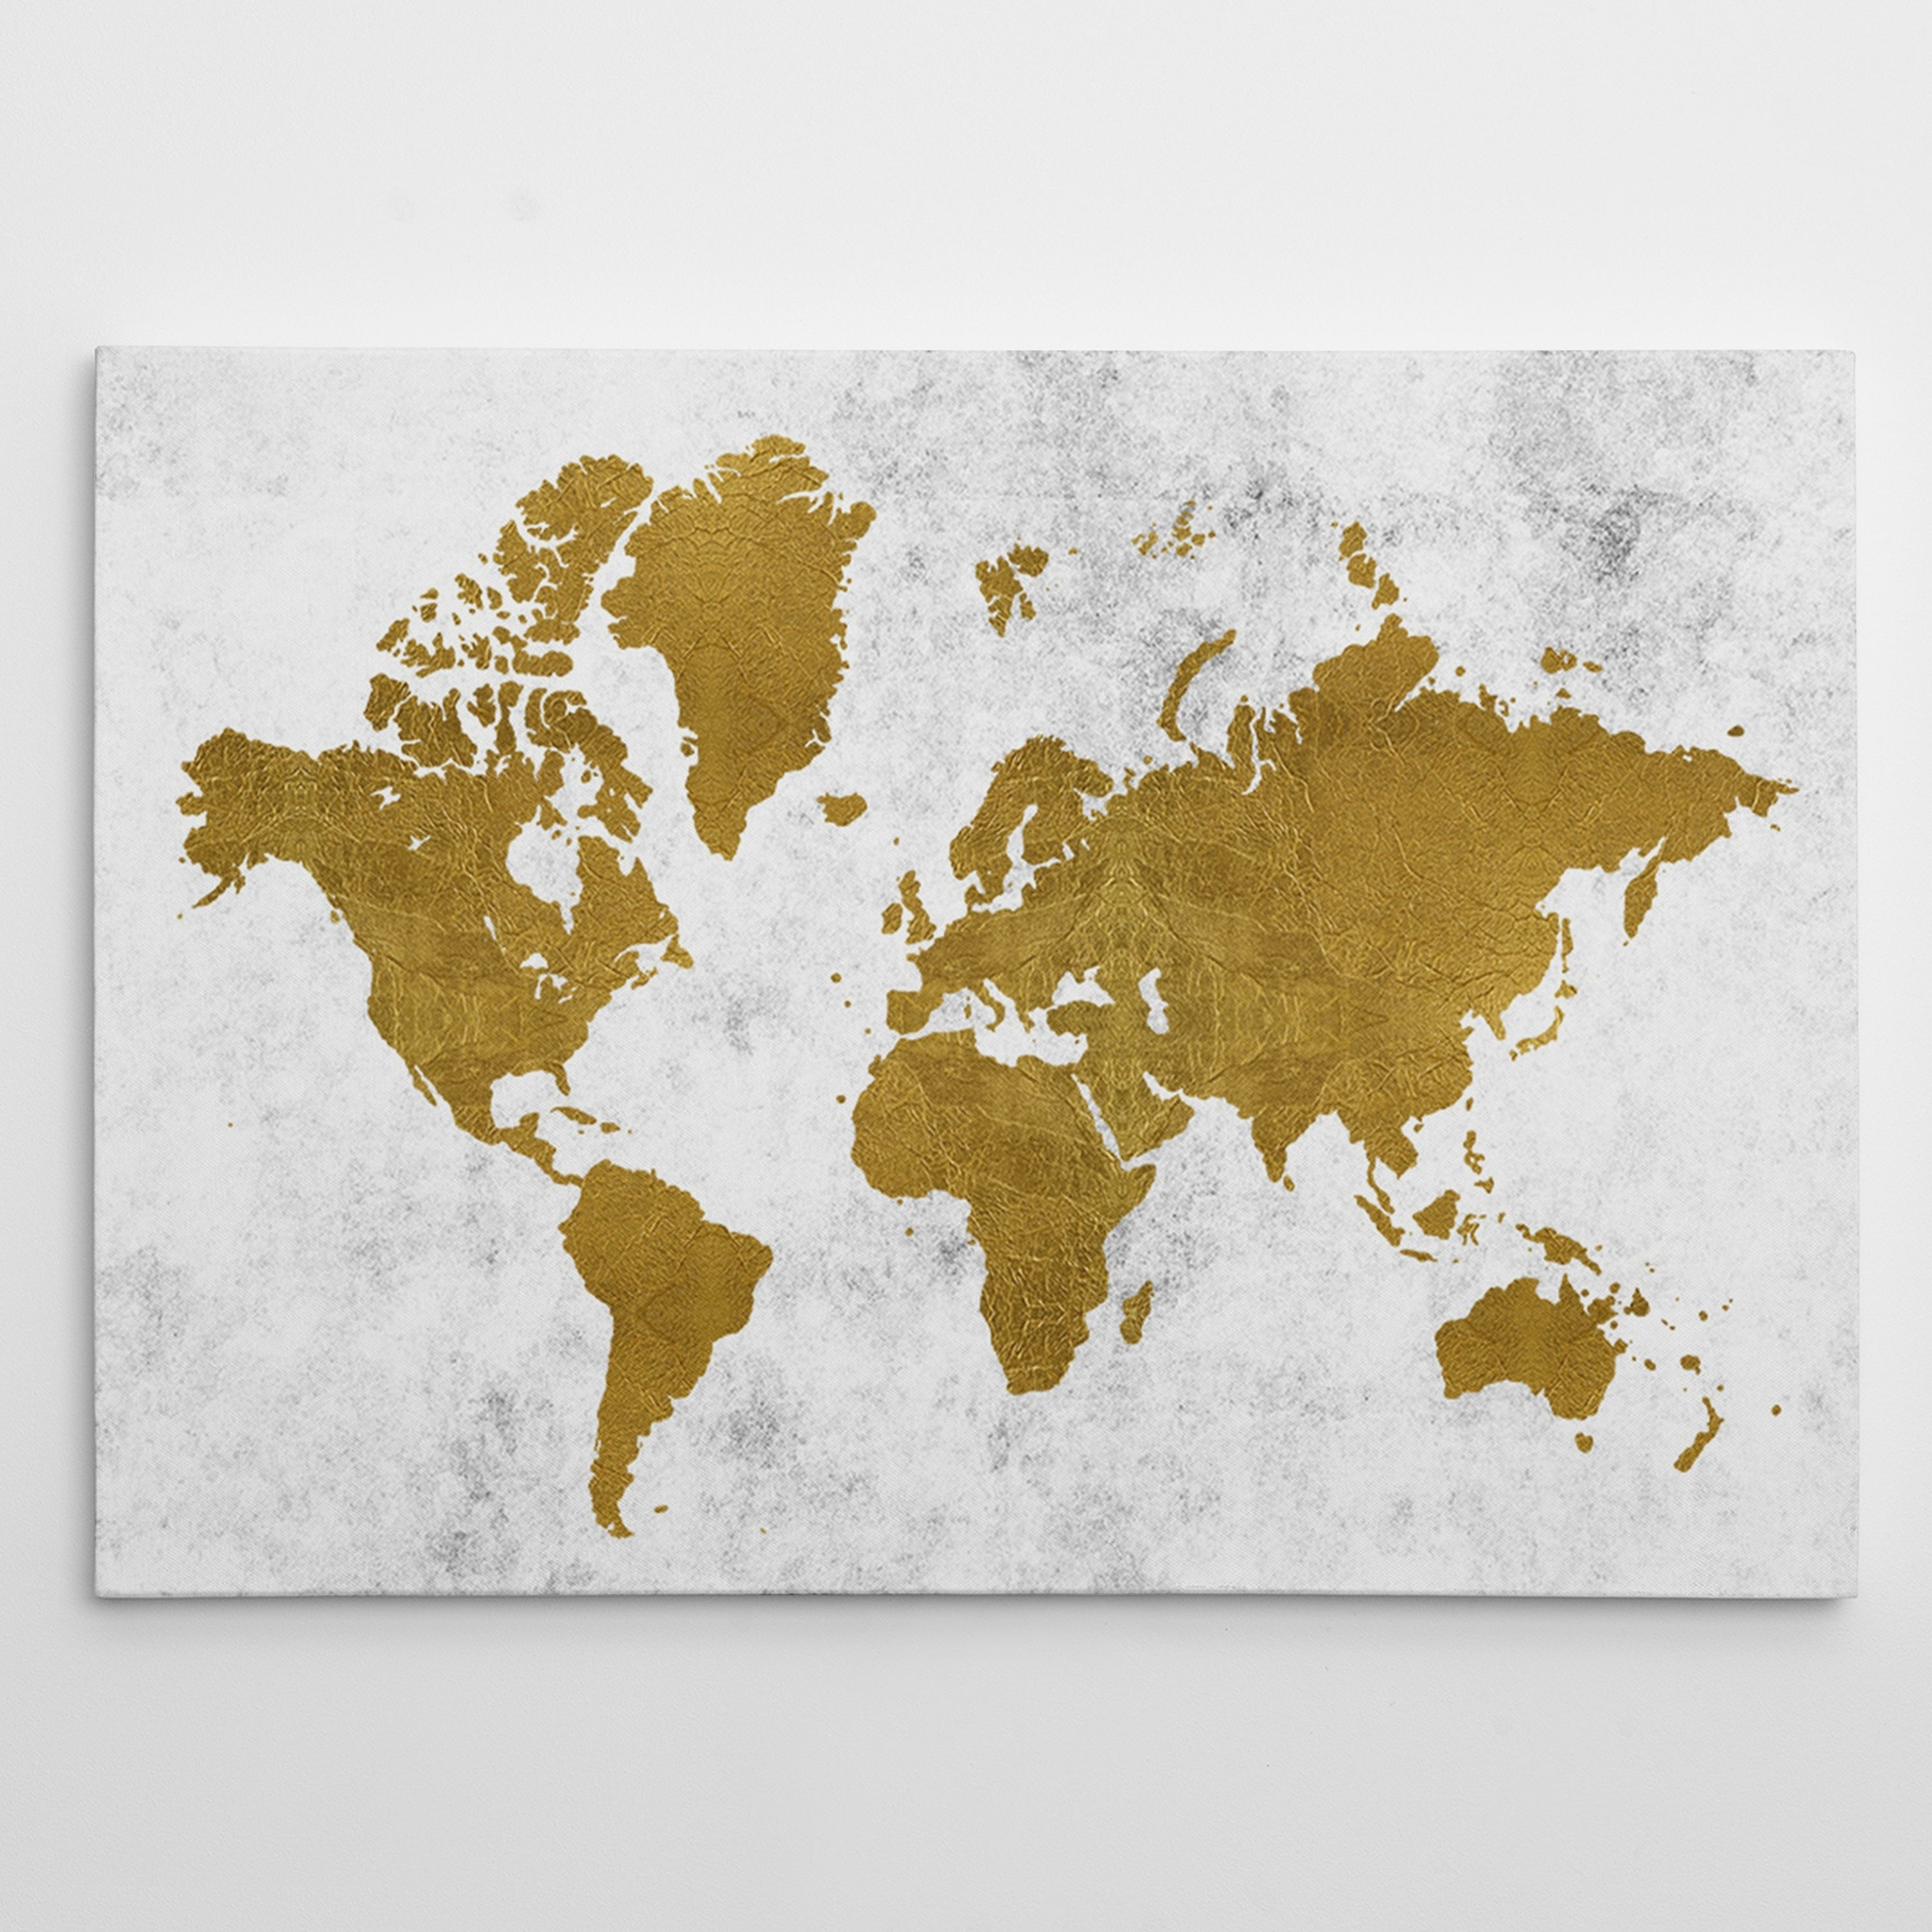 Shop golden world map gallery wrapped canvas on sale free shop golden world map gallery wrapped canvas on sale free shipping today overstock 17990336 gumiabroncs Image collections